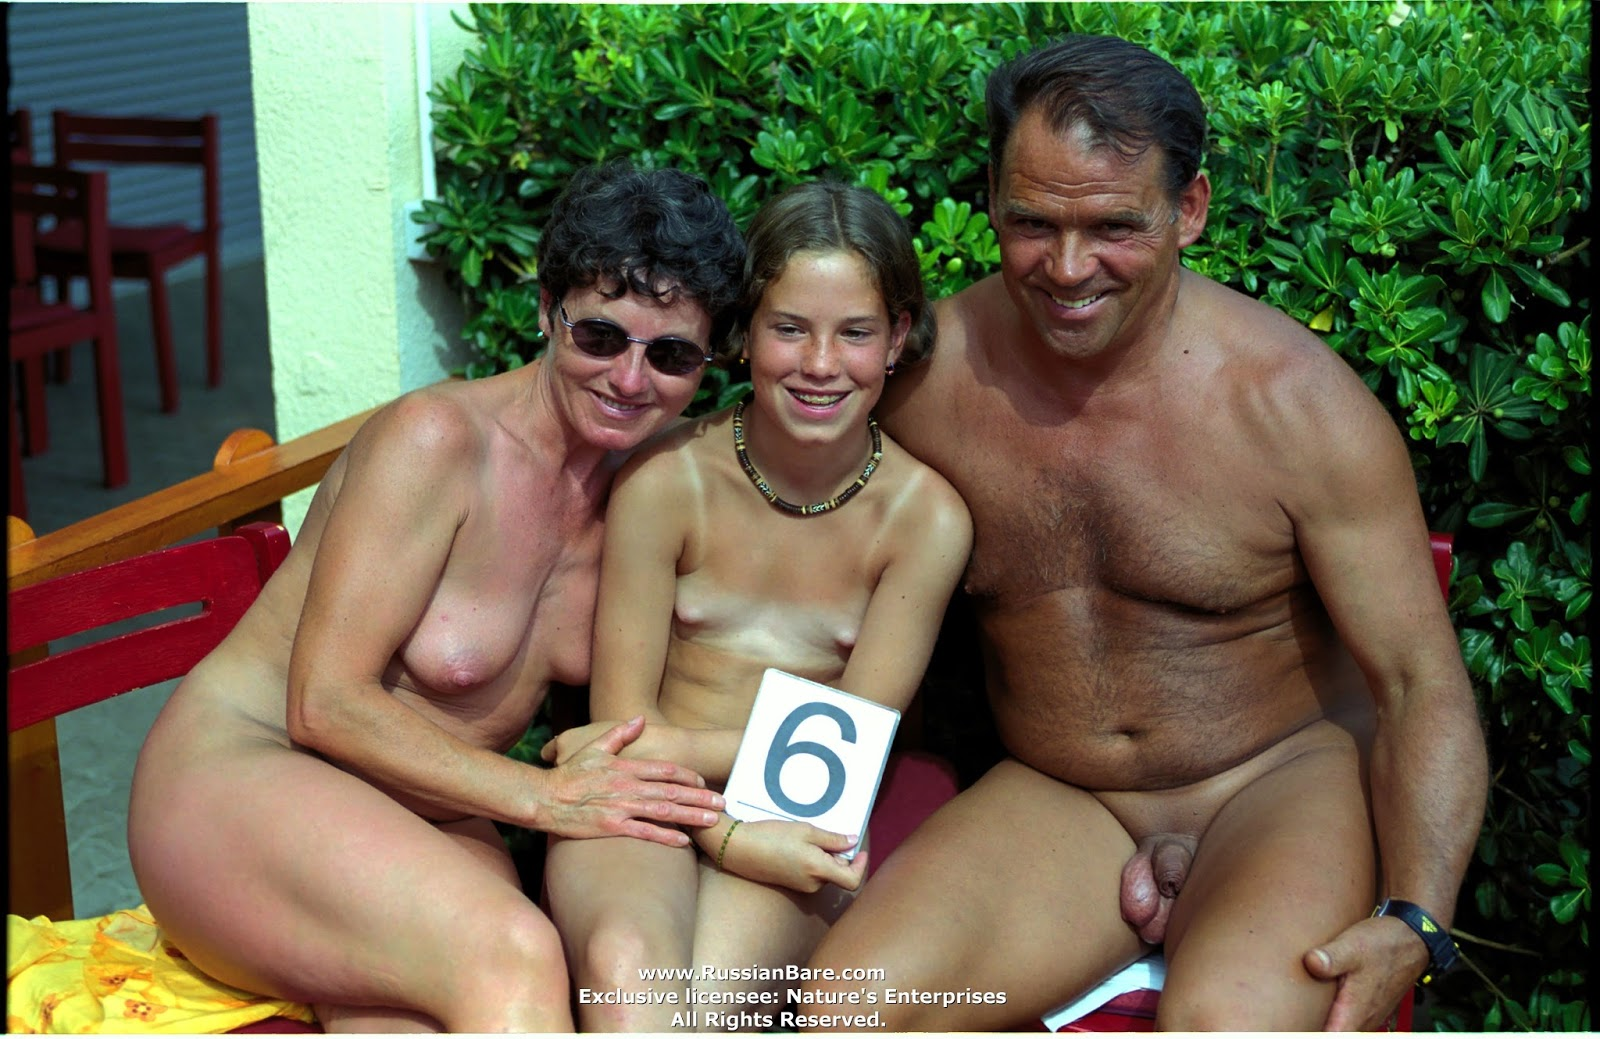 Remarkable, rather enature nudist pictures